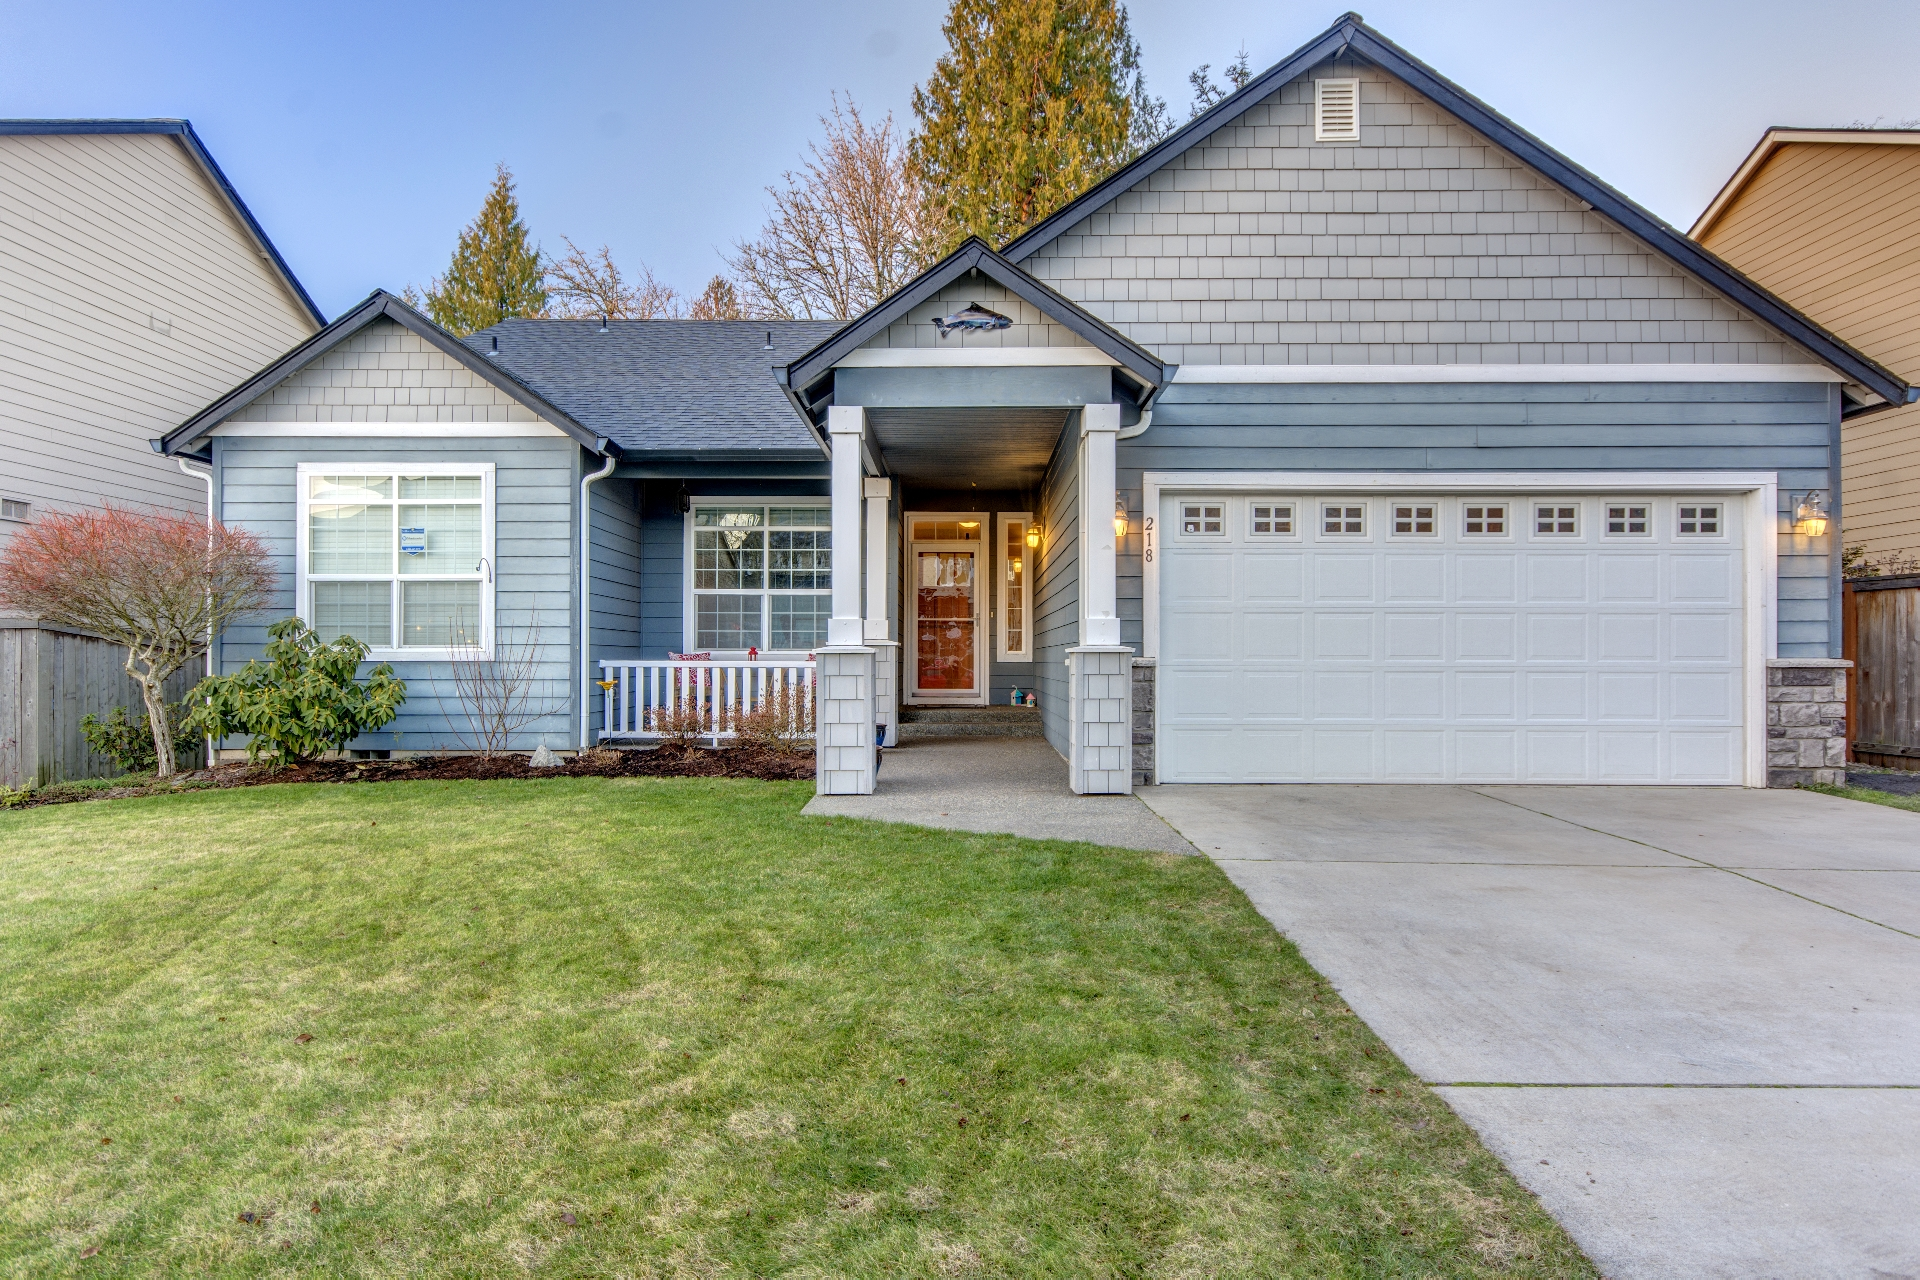 218 NW 153rd Street, Vancouver WA